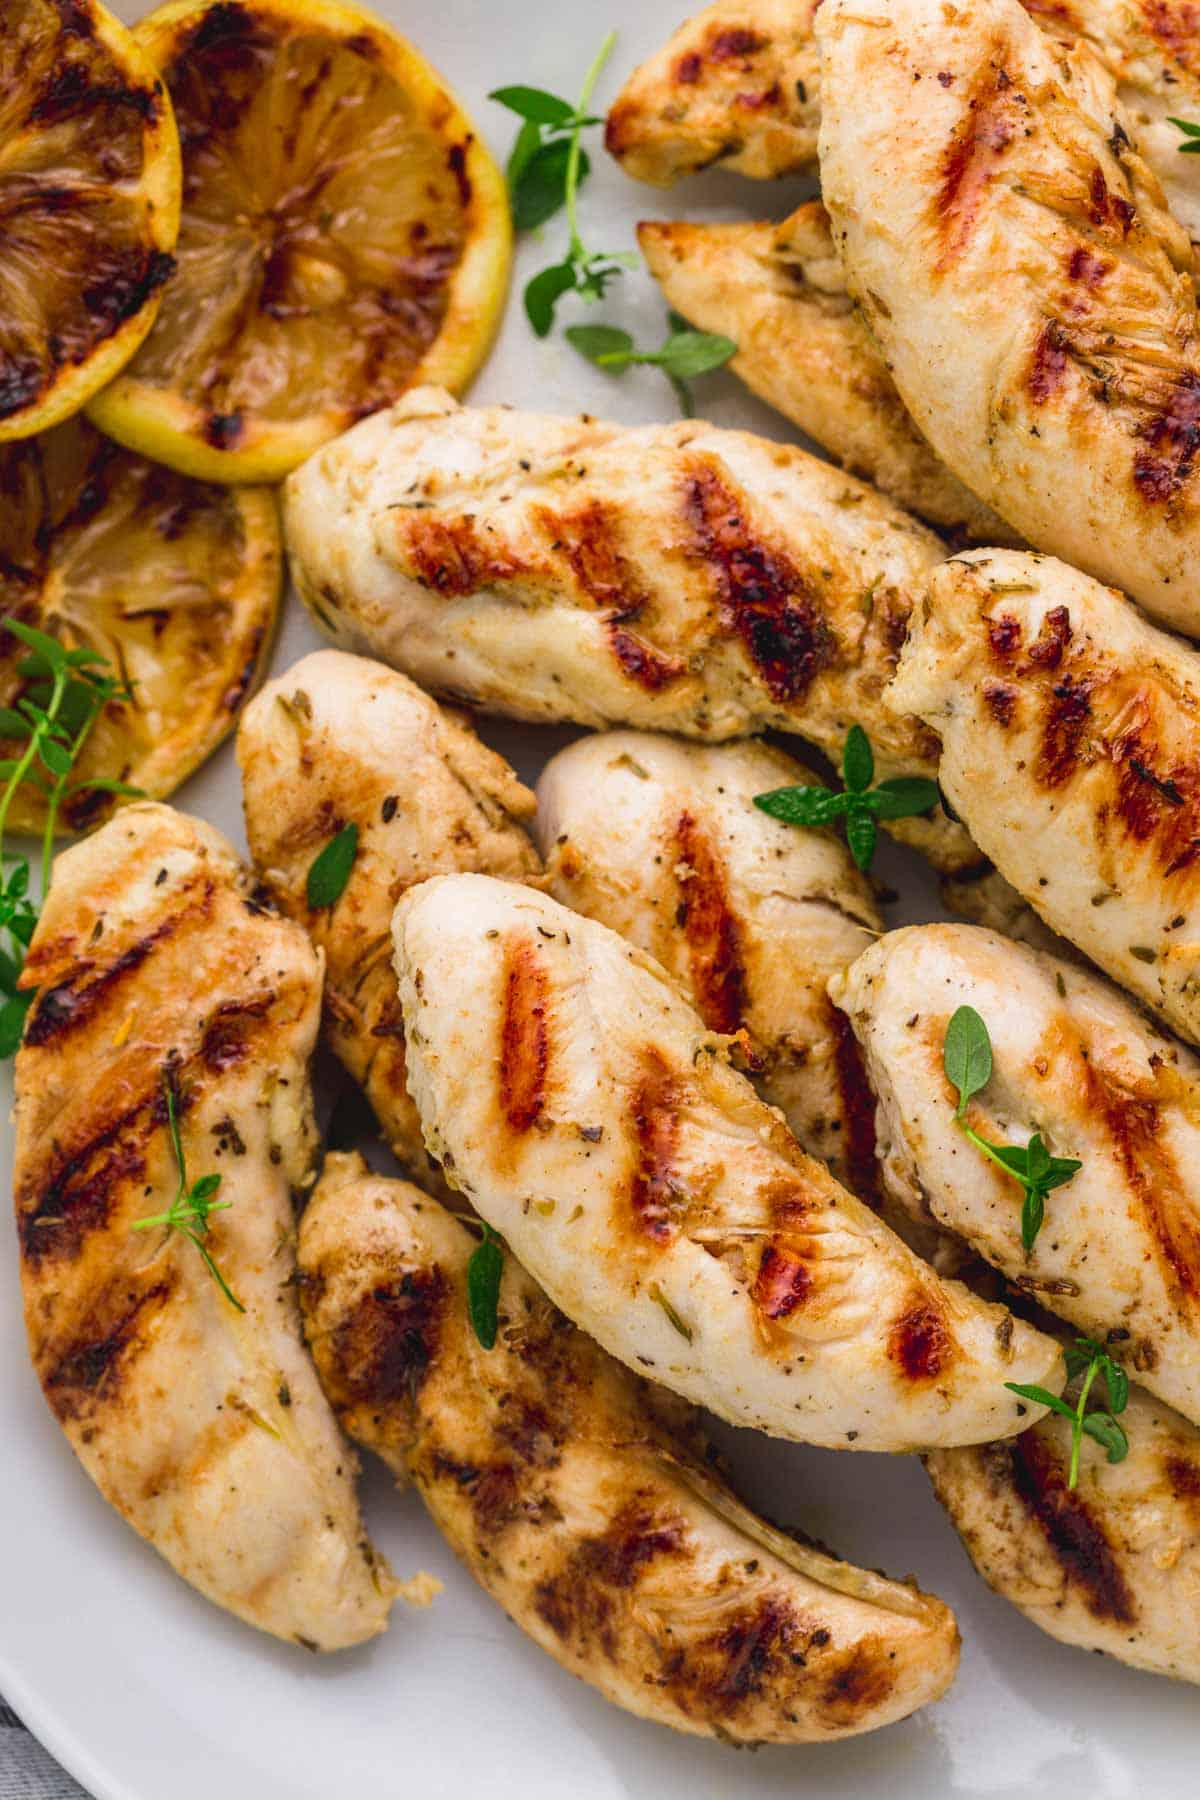 A plate of about a dozen grilled chicken tenders, sprinkled with thyme.